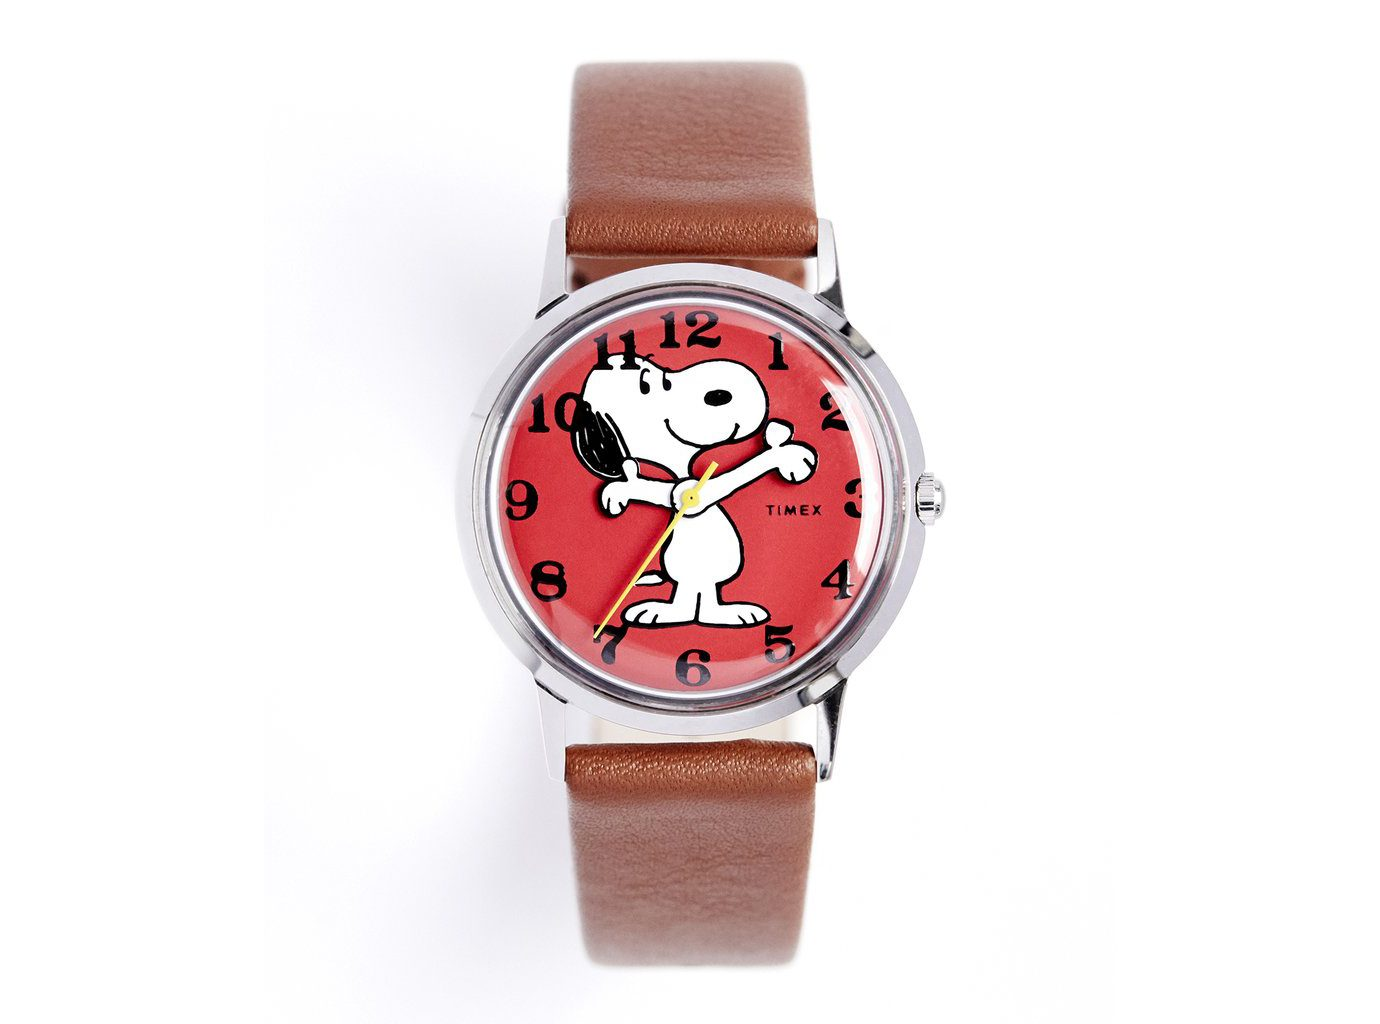 Timex Peanuts Snoopy Watch